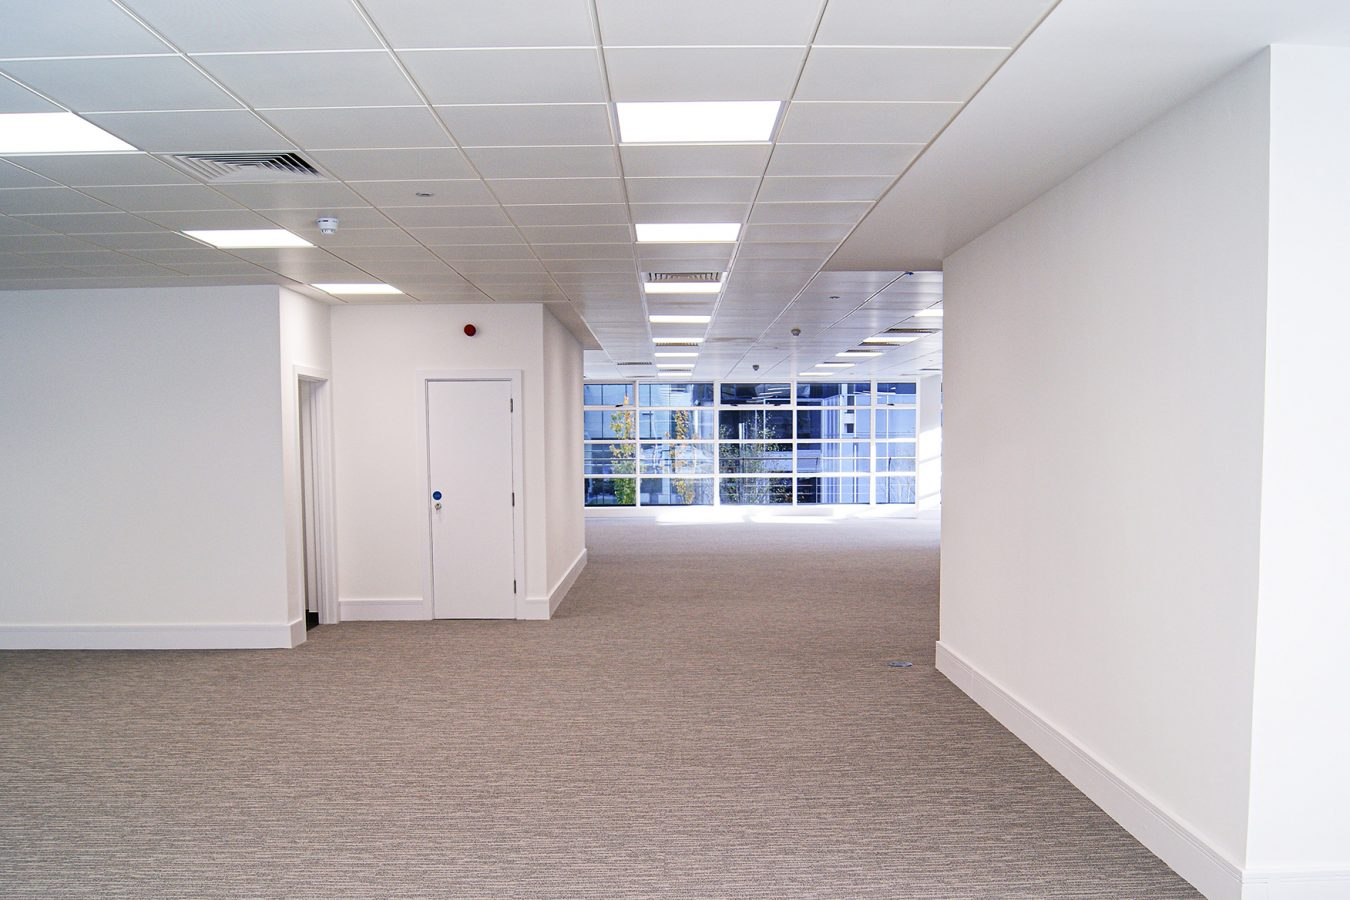 New carpet tiles throughout a refurbished office space in Harbour Excahnge.